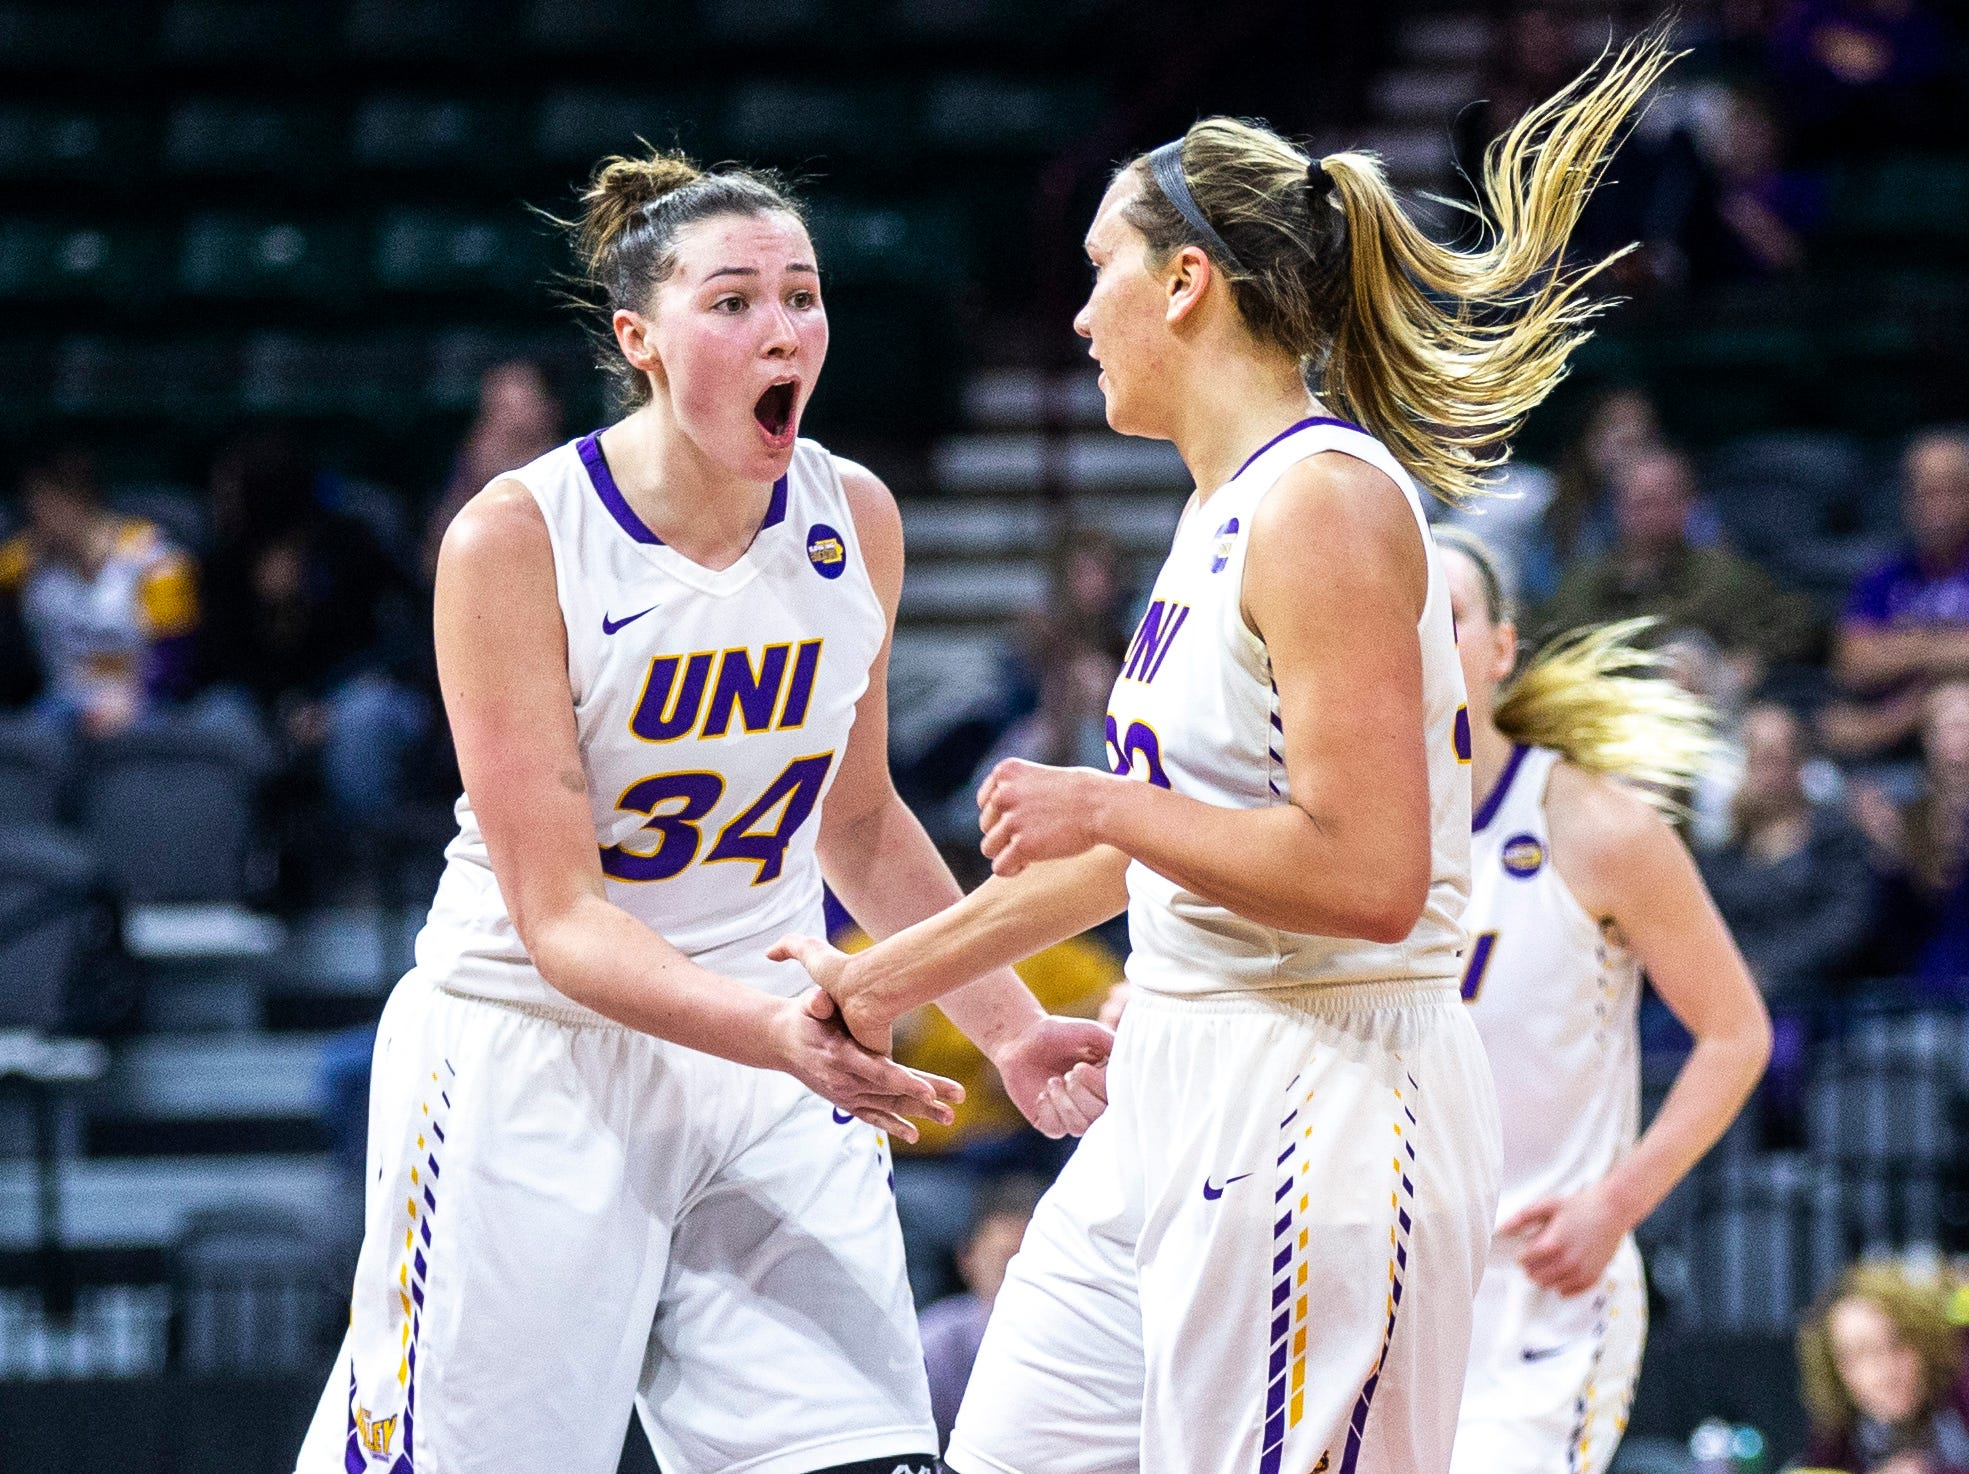 Northern Iowa forward Taylor Hagen (34) celebrates with Northern Iowa forward Heidi Hillyard, right, heading into a time out during a NCAA Missouri Valley Conference women's basketball quarterfinal tournament game, Friday, March 15, 2019, at the TaxSlayer Center in Moline, Illinois.